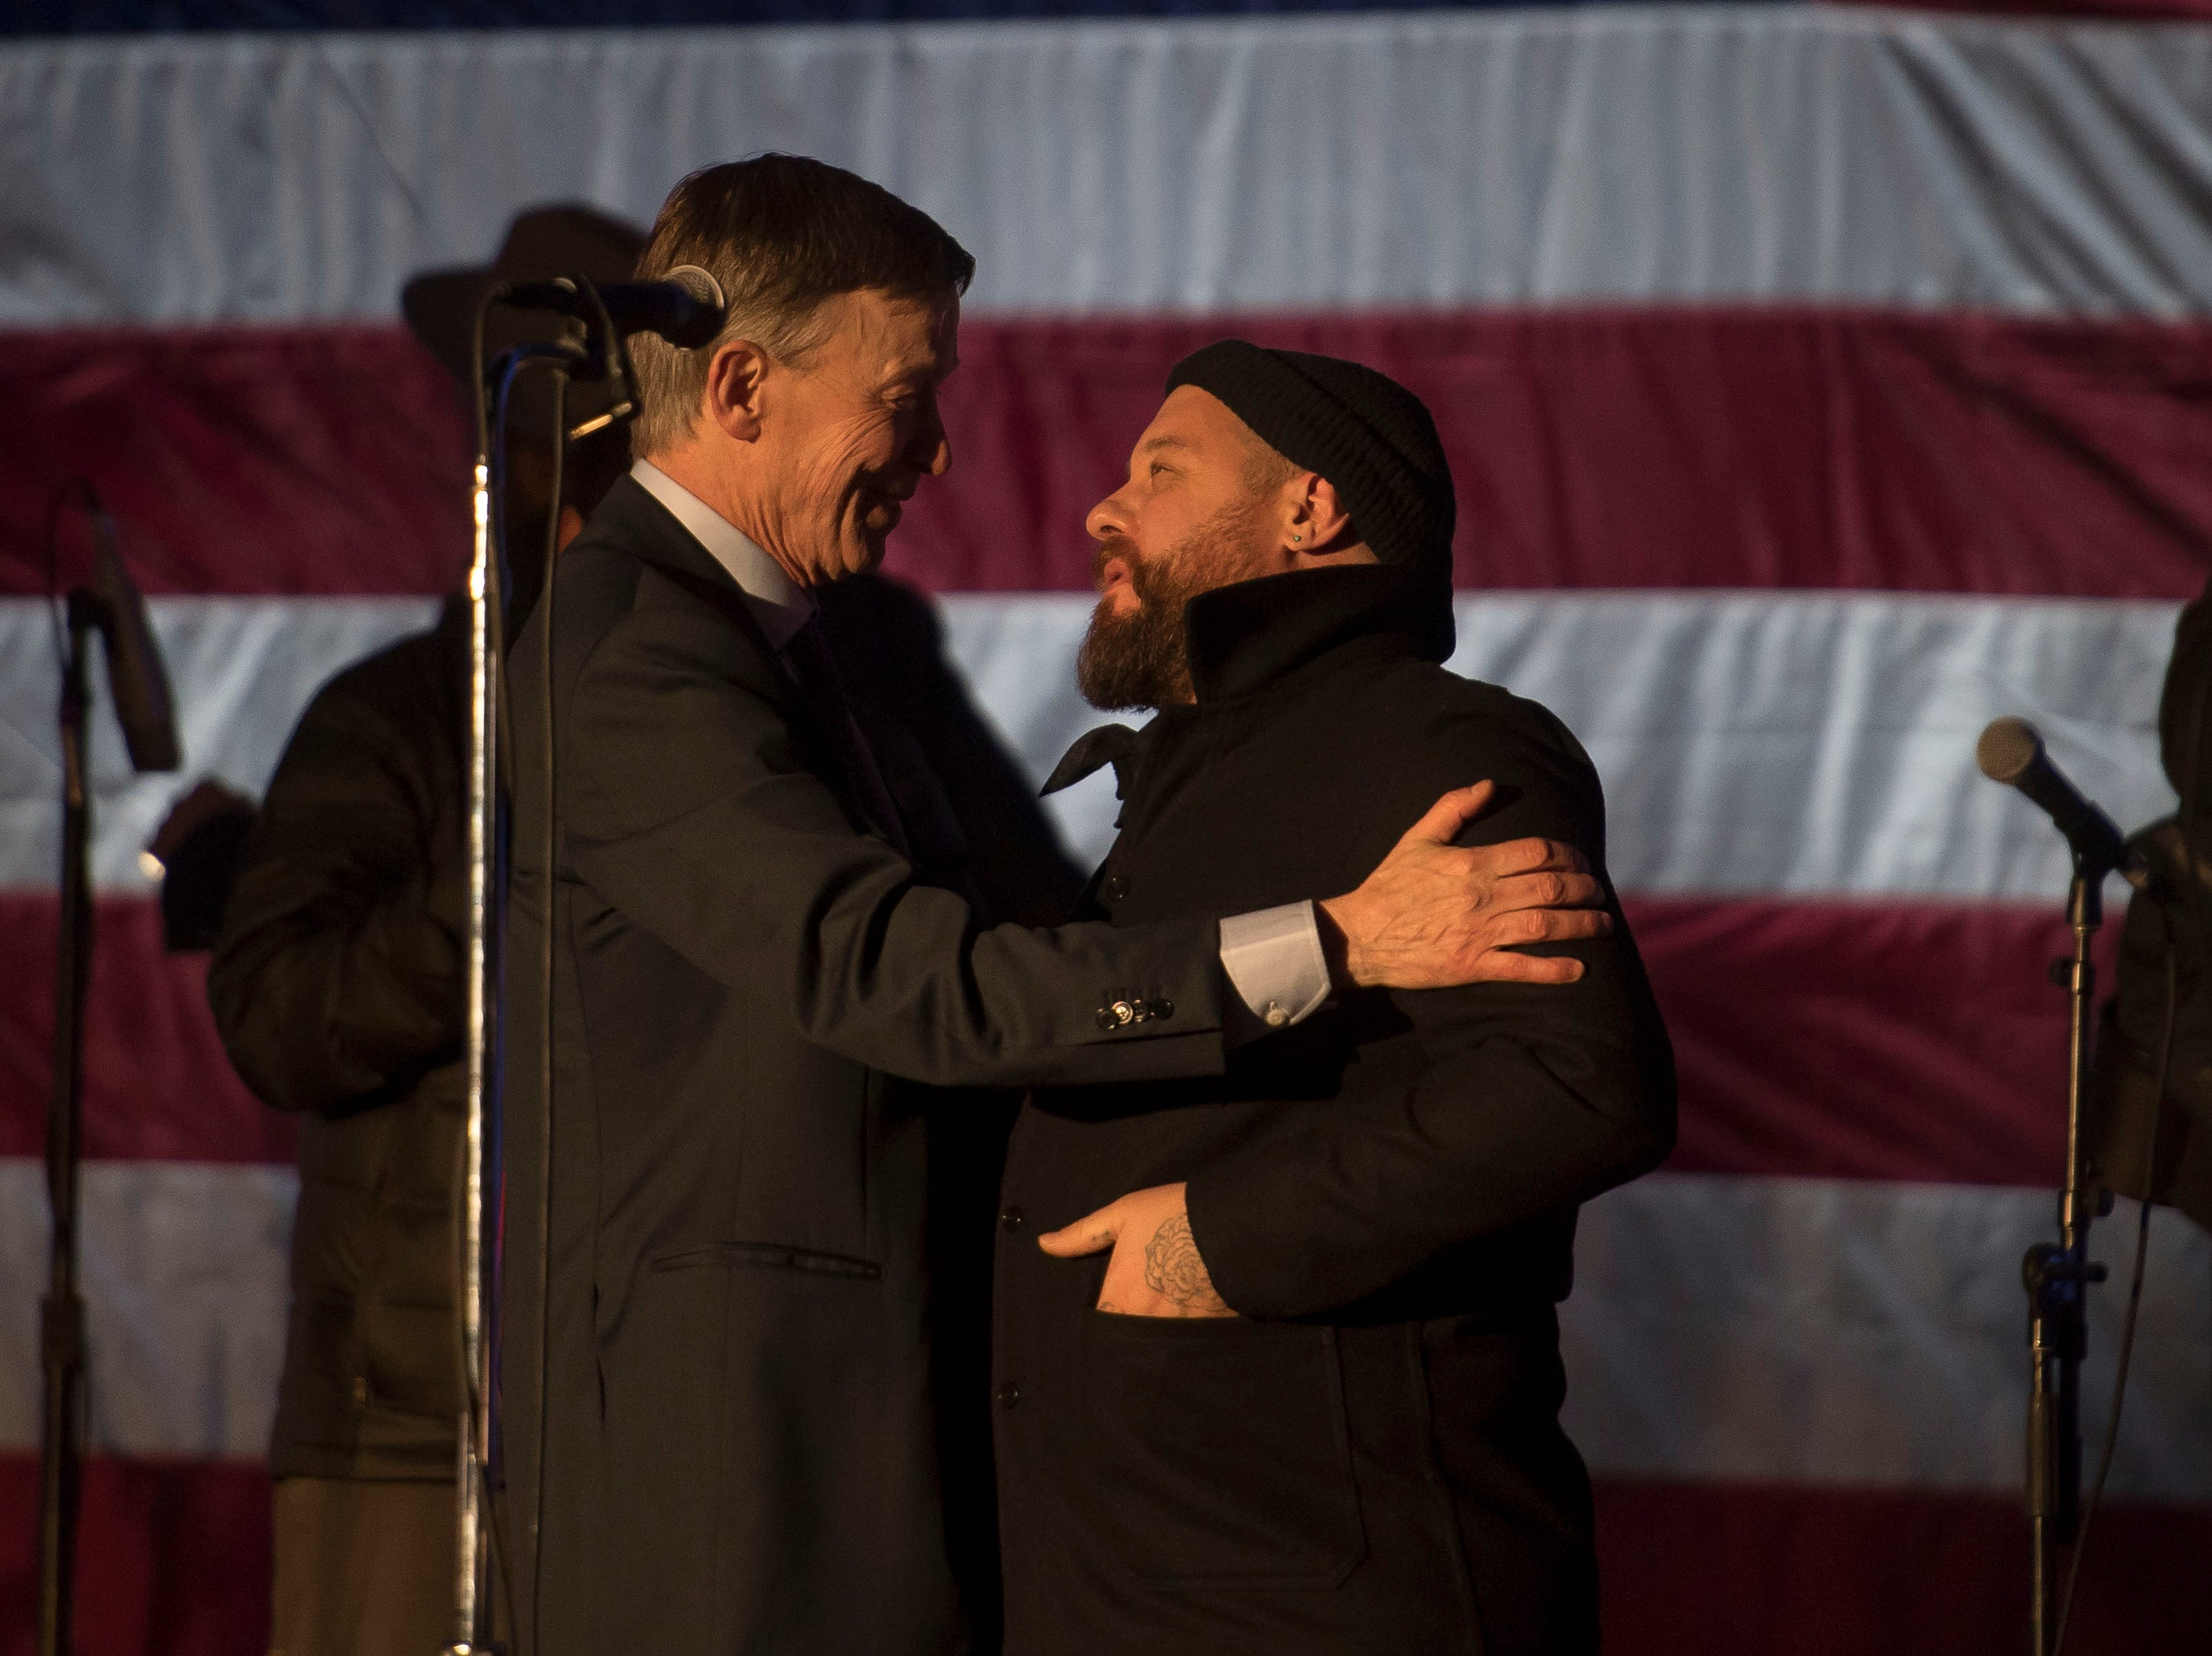 Former Colorado governor and current 2020 election year Presidential candidate John Hickenlooper shares a moment with Nathaniel Rateliff of the band Nathaniel Rateliff & The Night Sweats during HIckenlooper's presidential campaign kick-off rally on Thursday, March 7, 2019, at the Greek Ampitheatre in Civic Center Park in Denver, Colo.